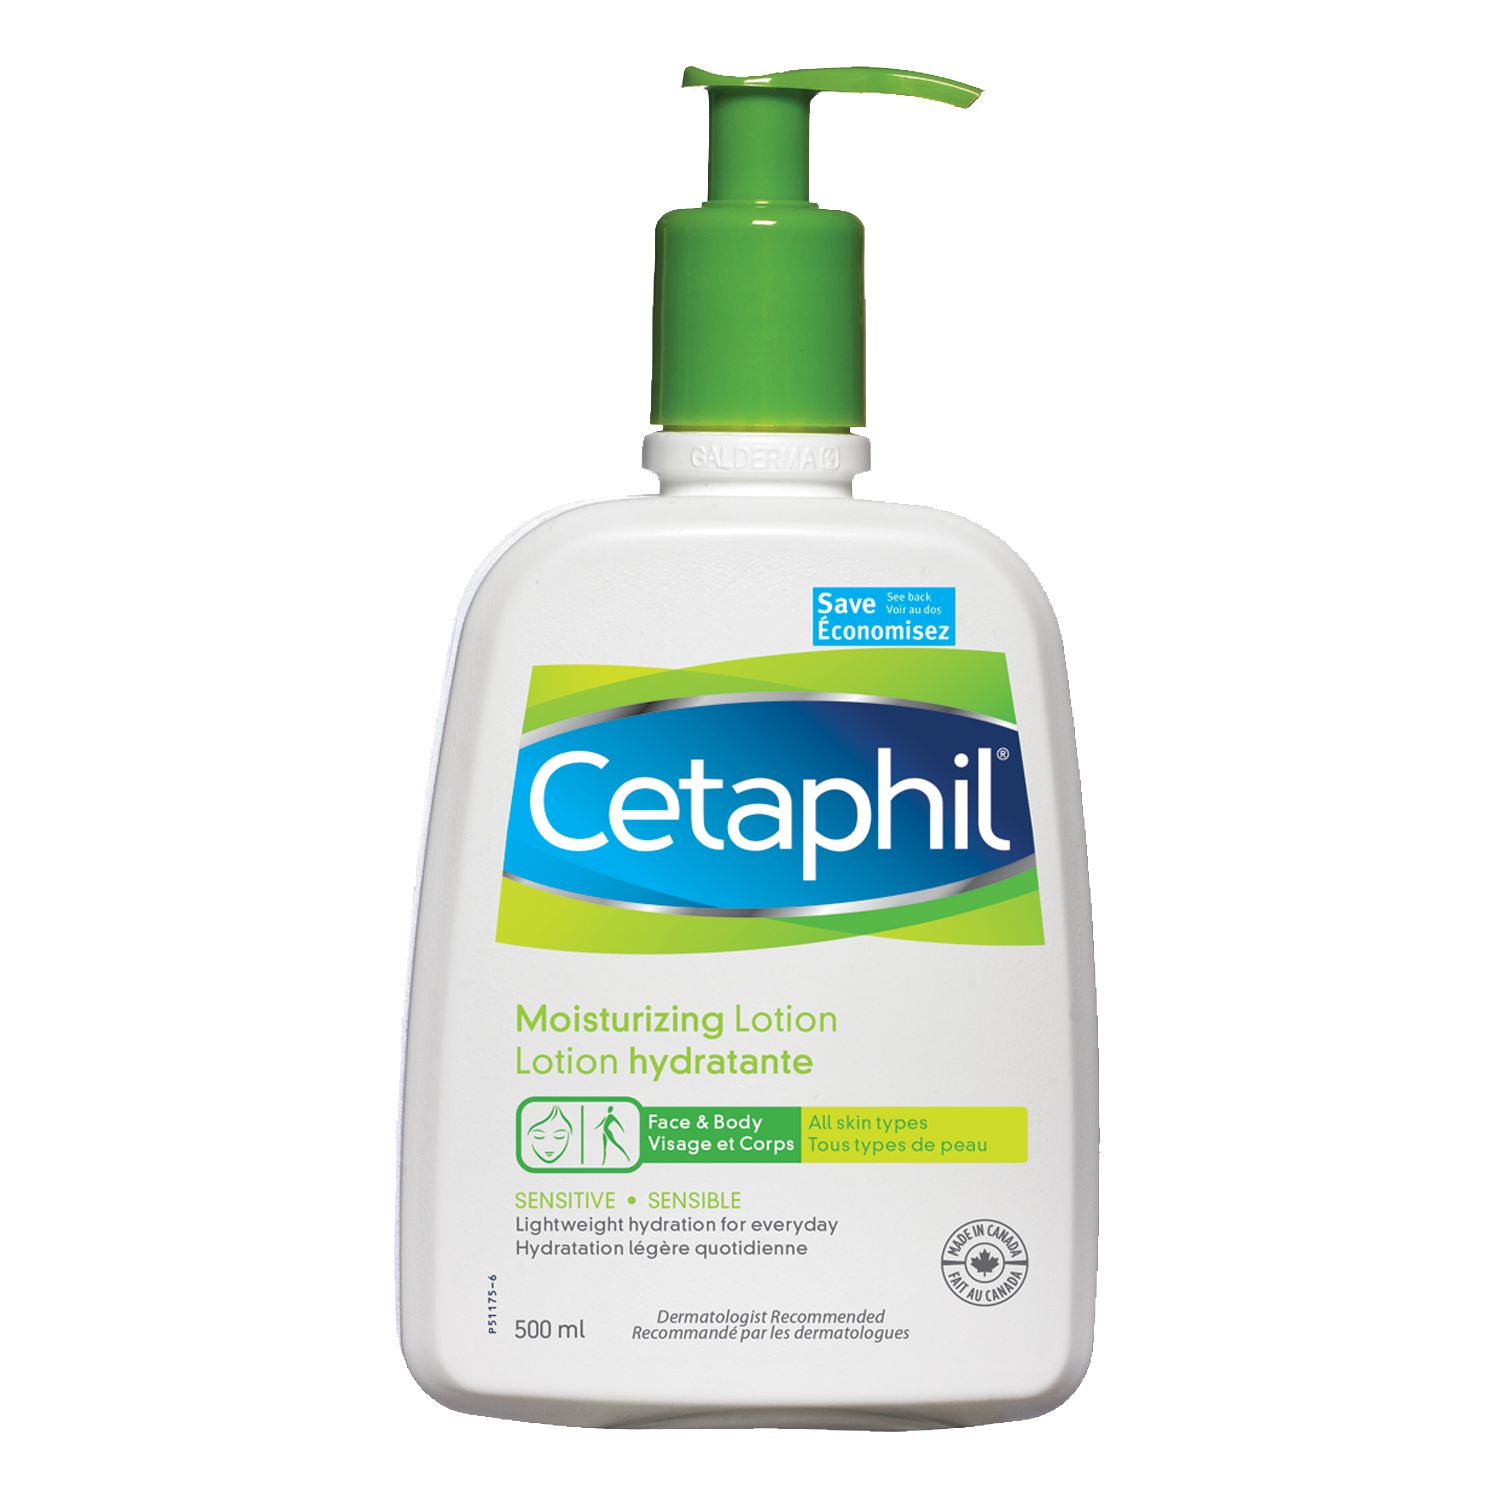 cetaphil moisturizing lotion for face